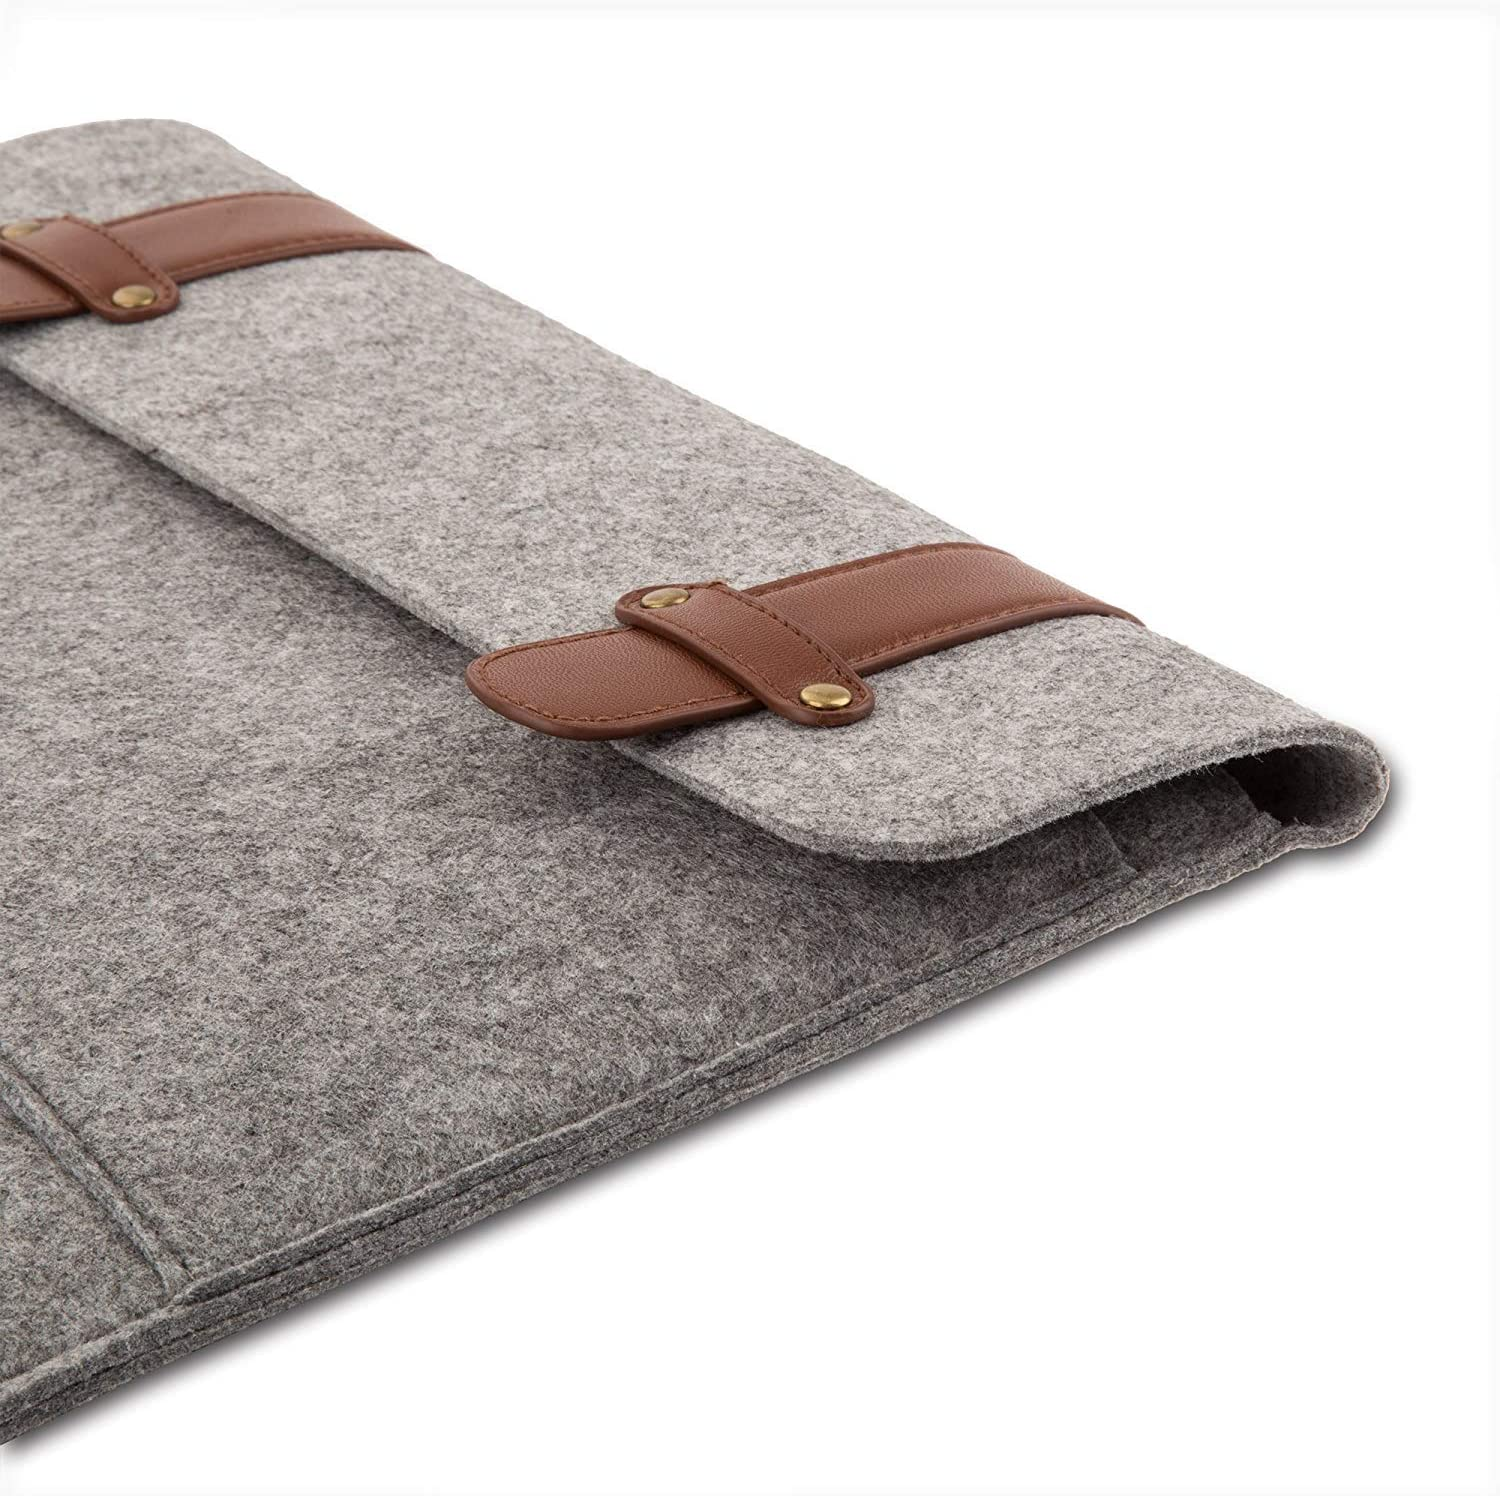 MOSISO Felt Sleeve Case Bag Cover Compatible with 2019 MacBook Pro 16 inch with Touch Bar A2141 Gray 15-15.4 inch MacBook Pro Retina A1398 15 inch MacBook Pro with Touch Bar A1990 A1707 2016-2019